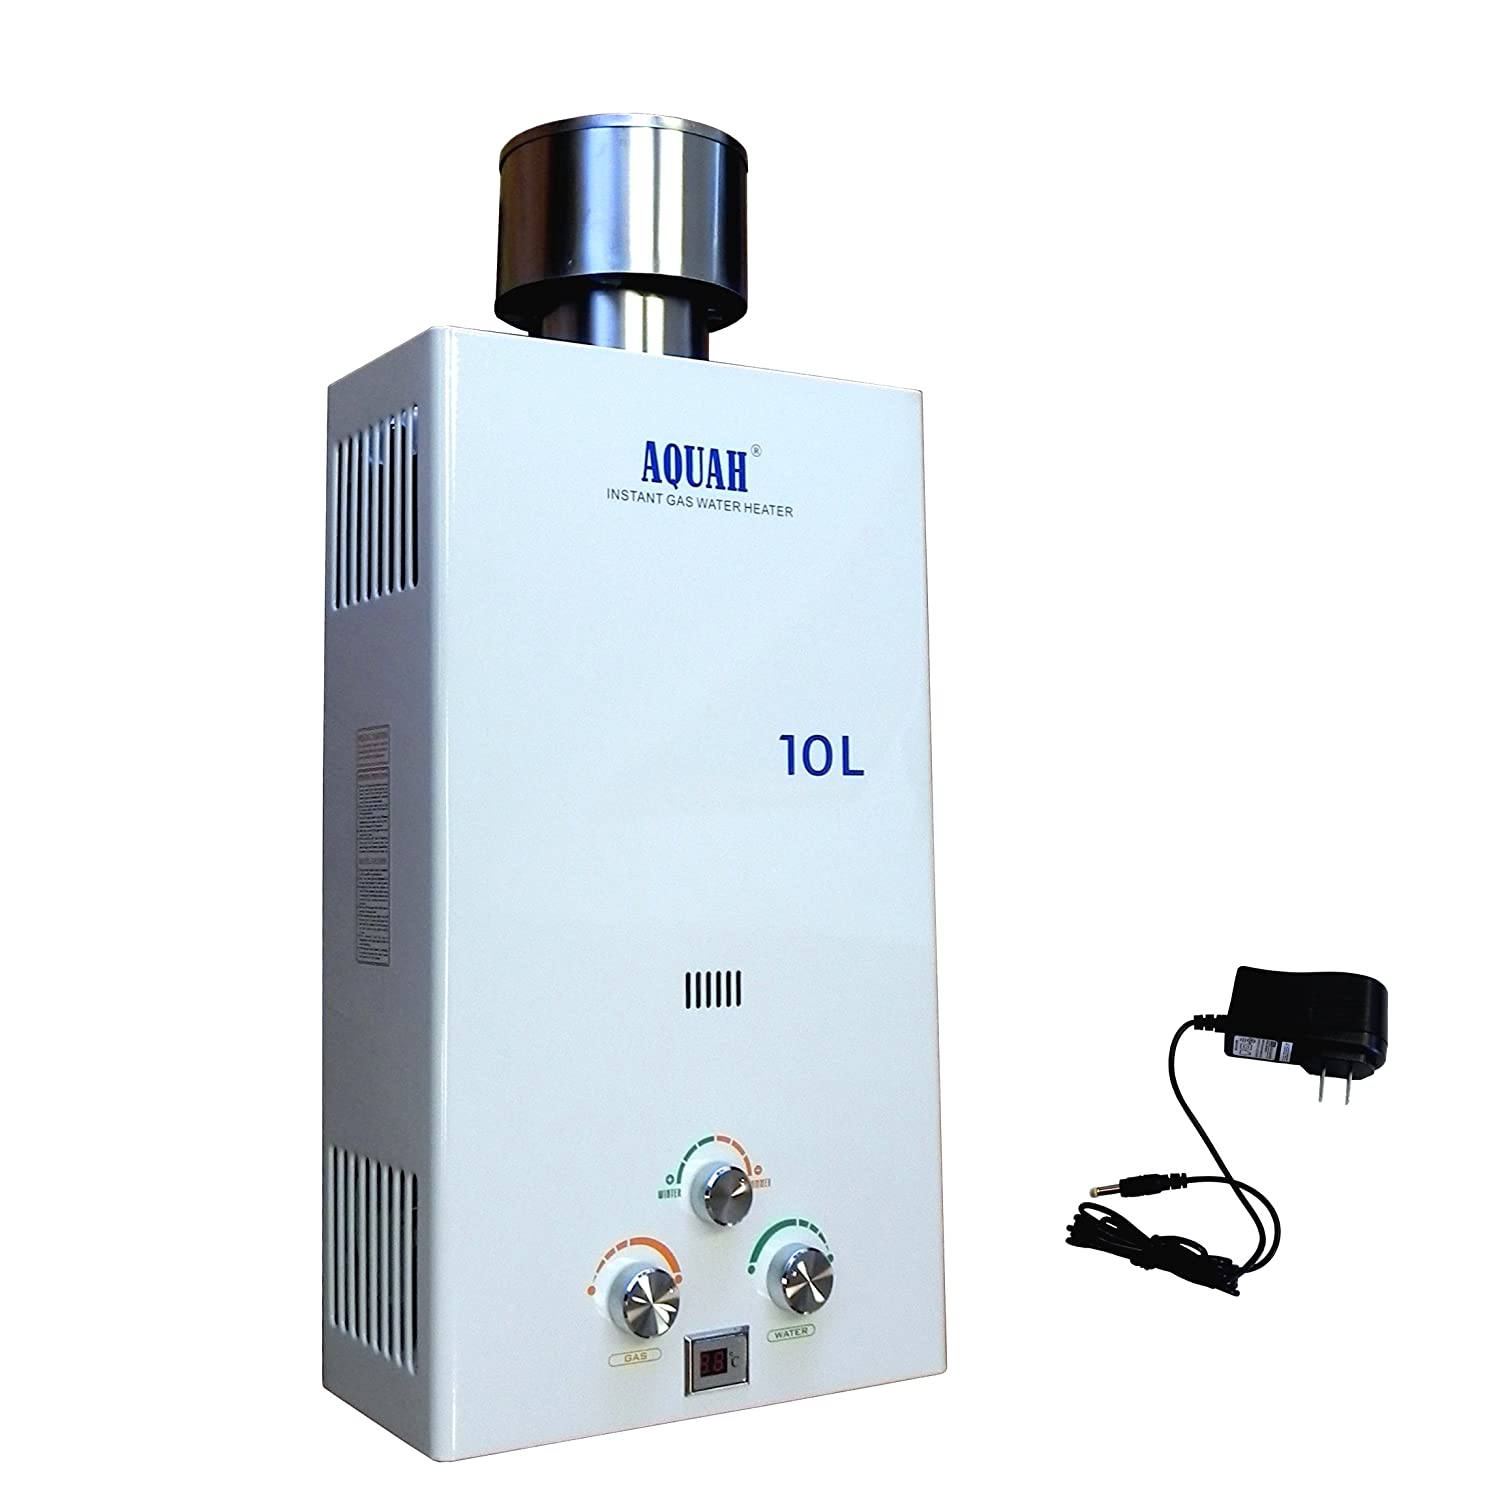 Battery Operated Water Heater Aquah Outdoor Liquid Propane Gas Tankless Water Heater 10 L 27